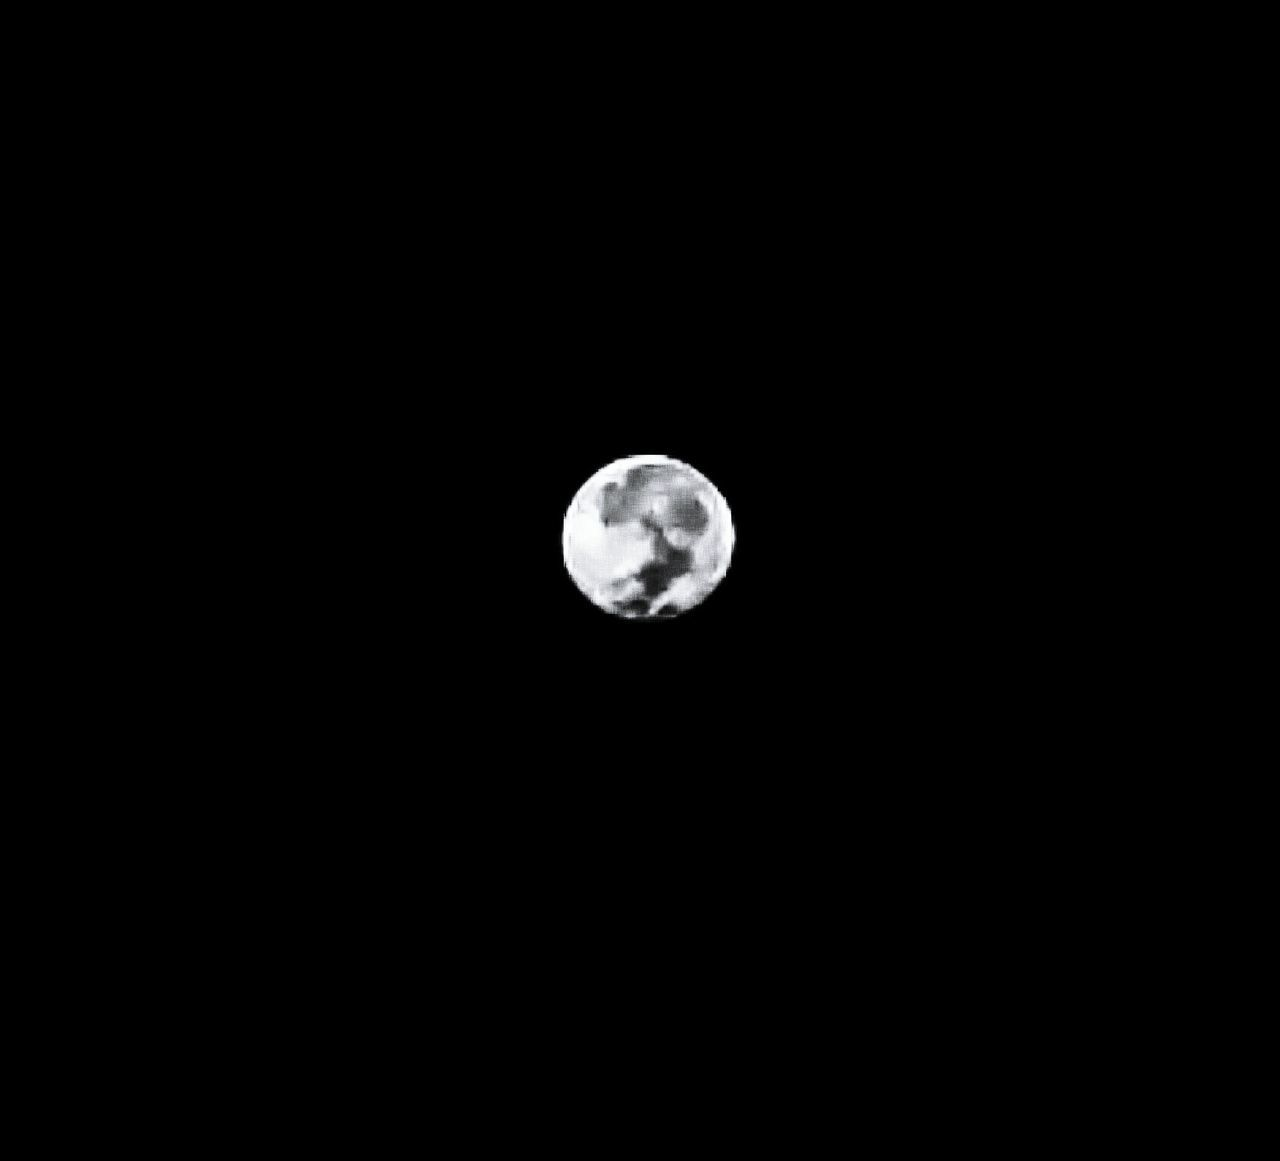 Hi kiddo! LGG4 Philippines Athome  Earlymorning  Othersideofmoon Full Moon EyeEm Photography Capture The Moment Craters Moonload Learn & Shoot: After Dark The Magic Mission